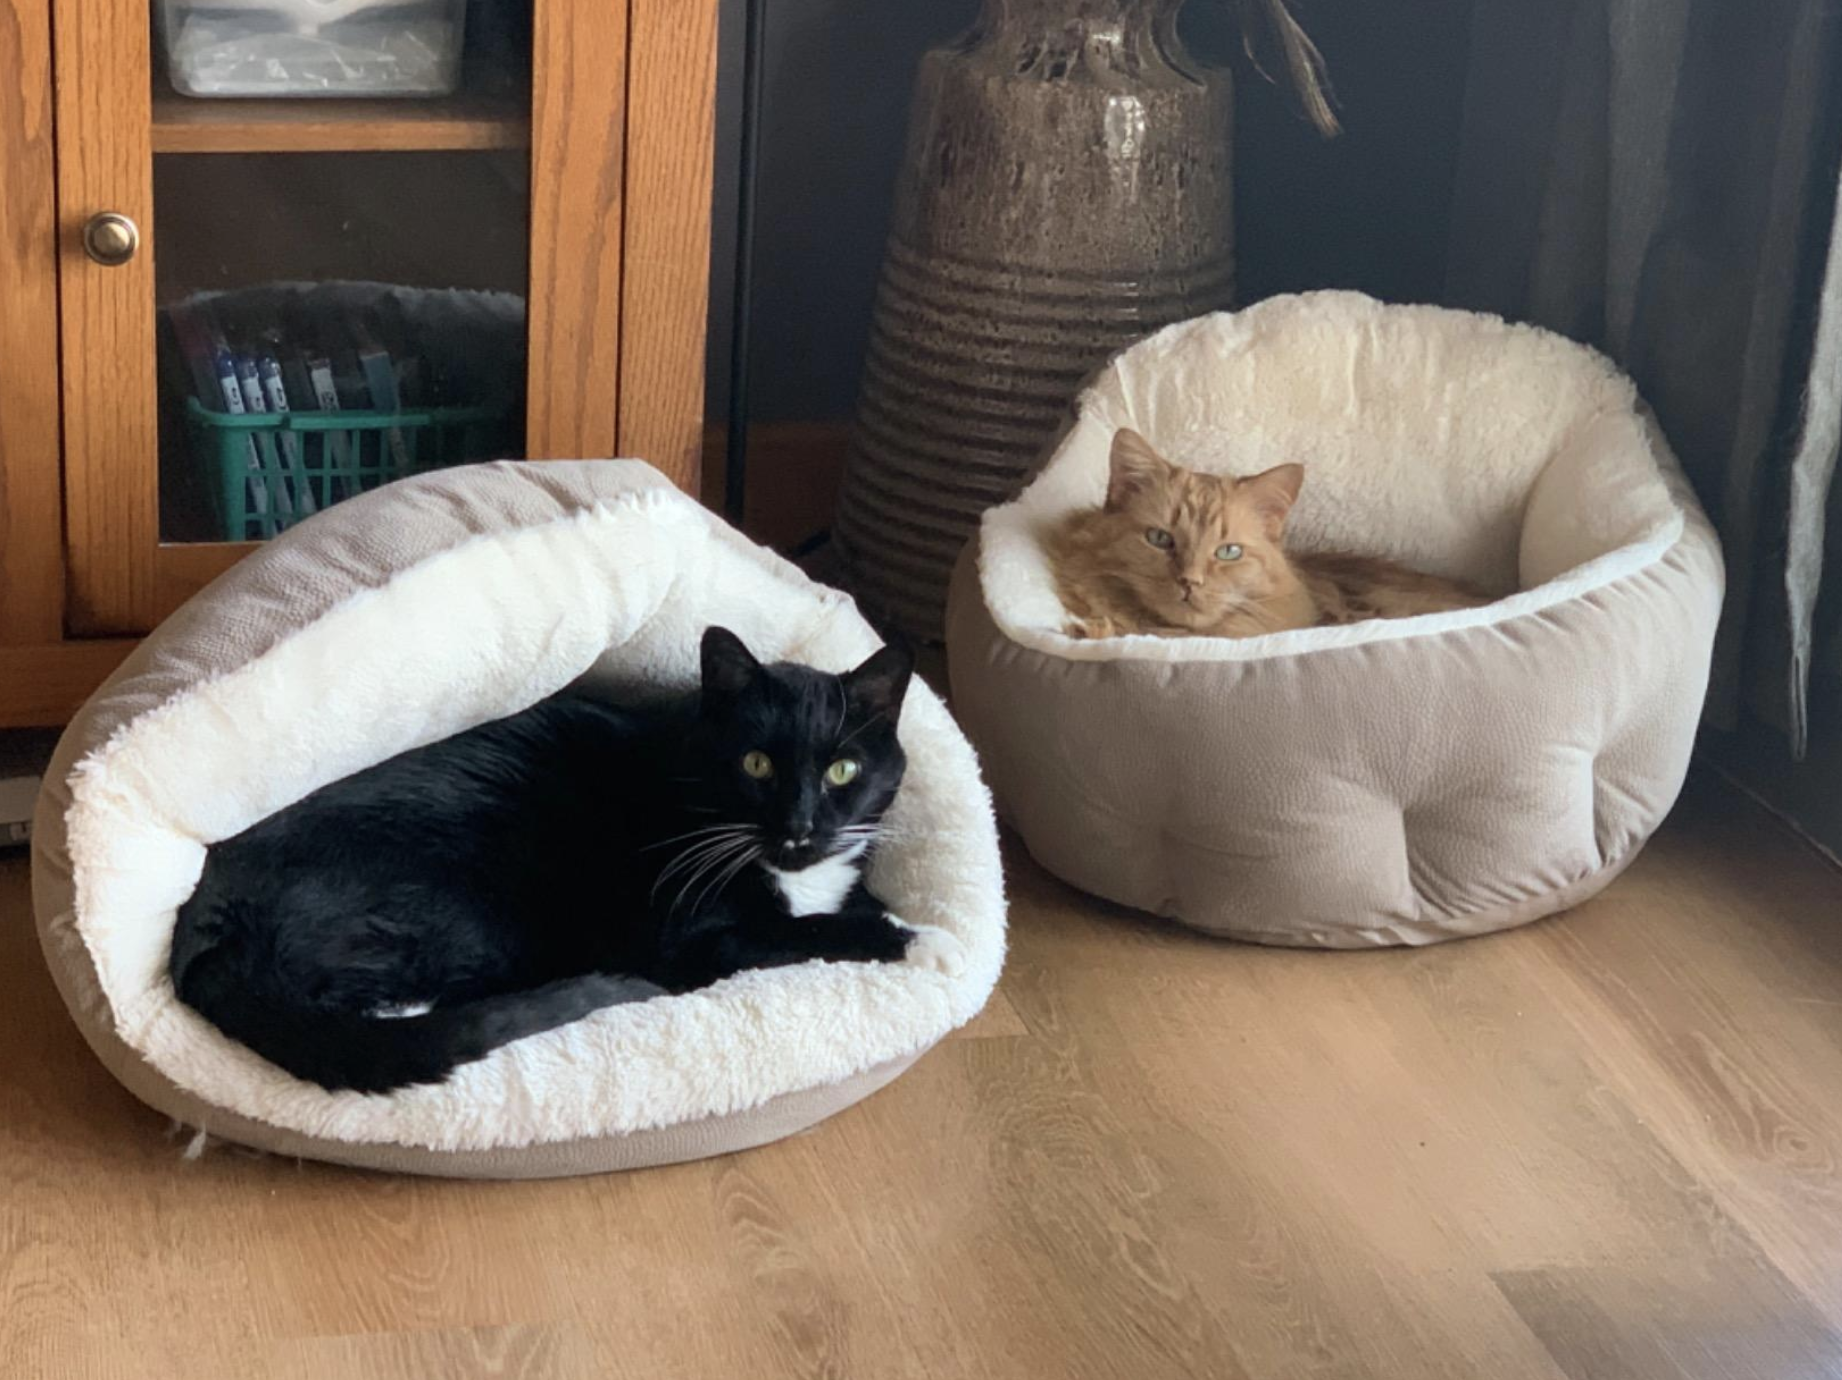 Two cats sitting in two separate cuddler beds. One black cat is sitting on the edge of its bed while the other is sitting completely inside it.